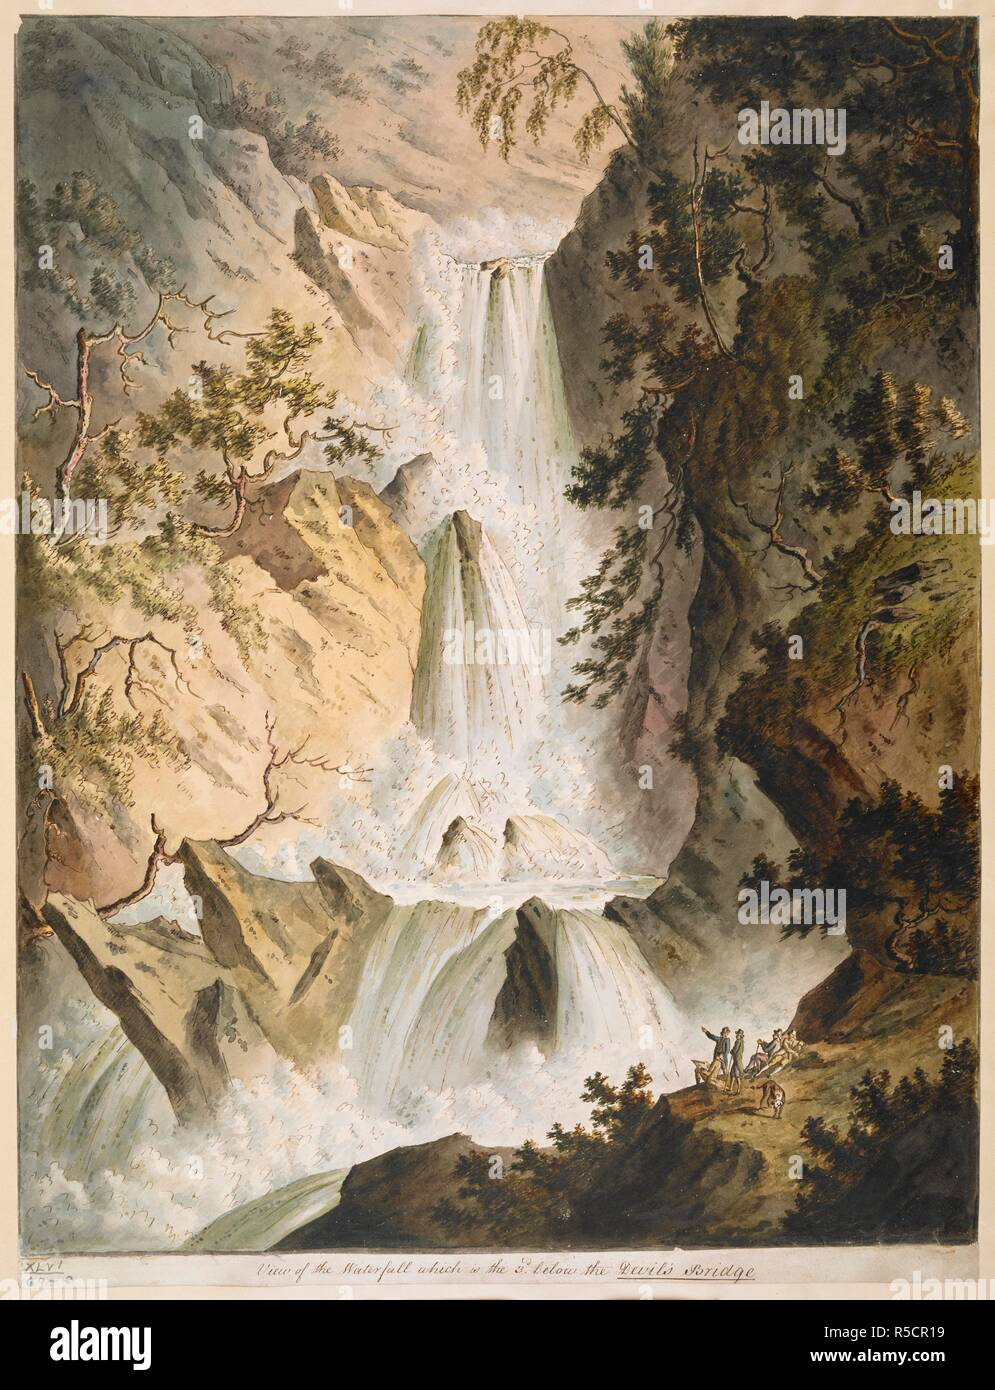 Figures and a dog standing looking at three waterfalls; rocks and trees on either side. View of the Waterfall which is the third below the Devil's Bridge. between 1790-1802. Pen and black ink with watercolour. Source: Maps K.Top.46.69.e. Language: English. - Stock Image